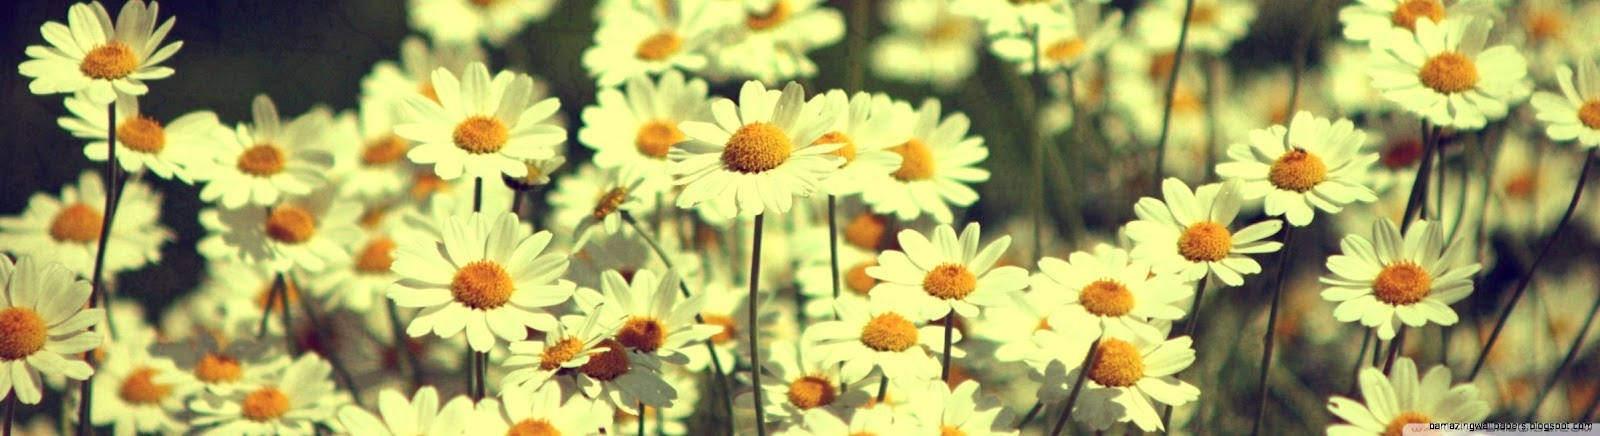 Vintage Daisies Tumblr Amazing Wallpapers